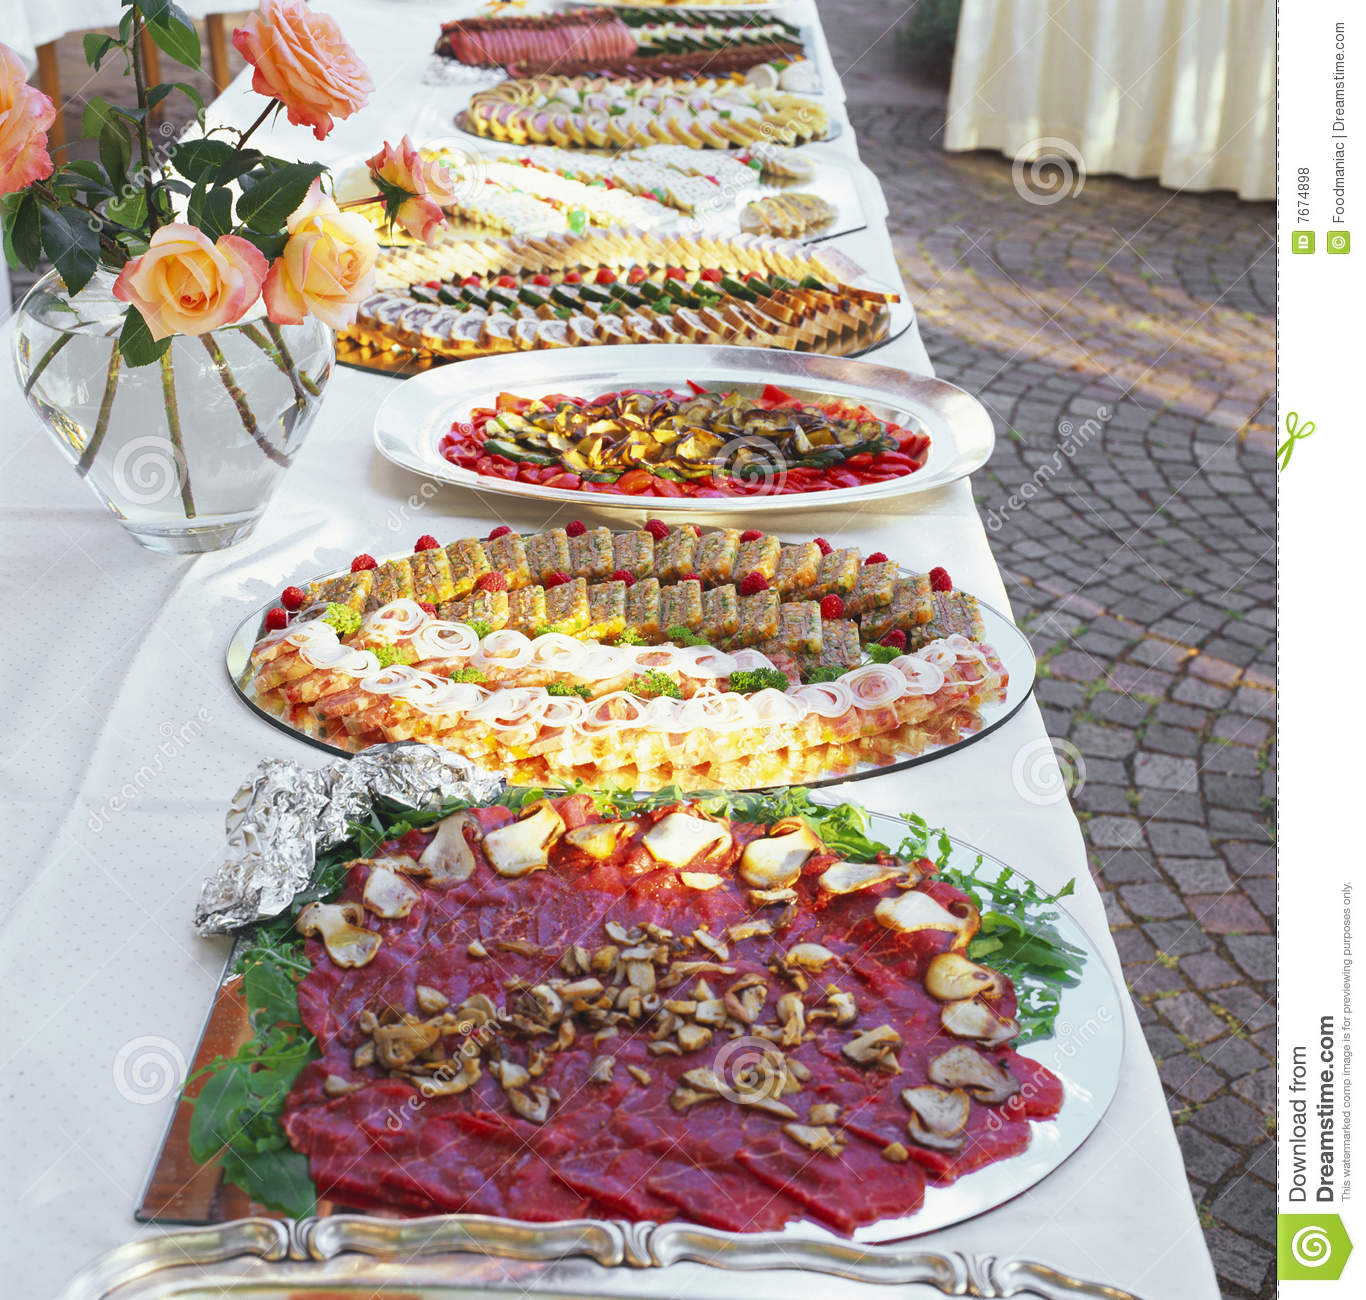 Cold Buffet Stock Photos, Images, & Pictures.